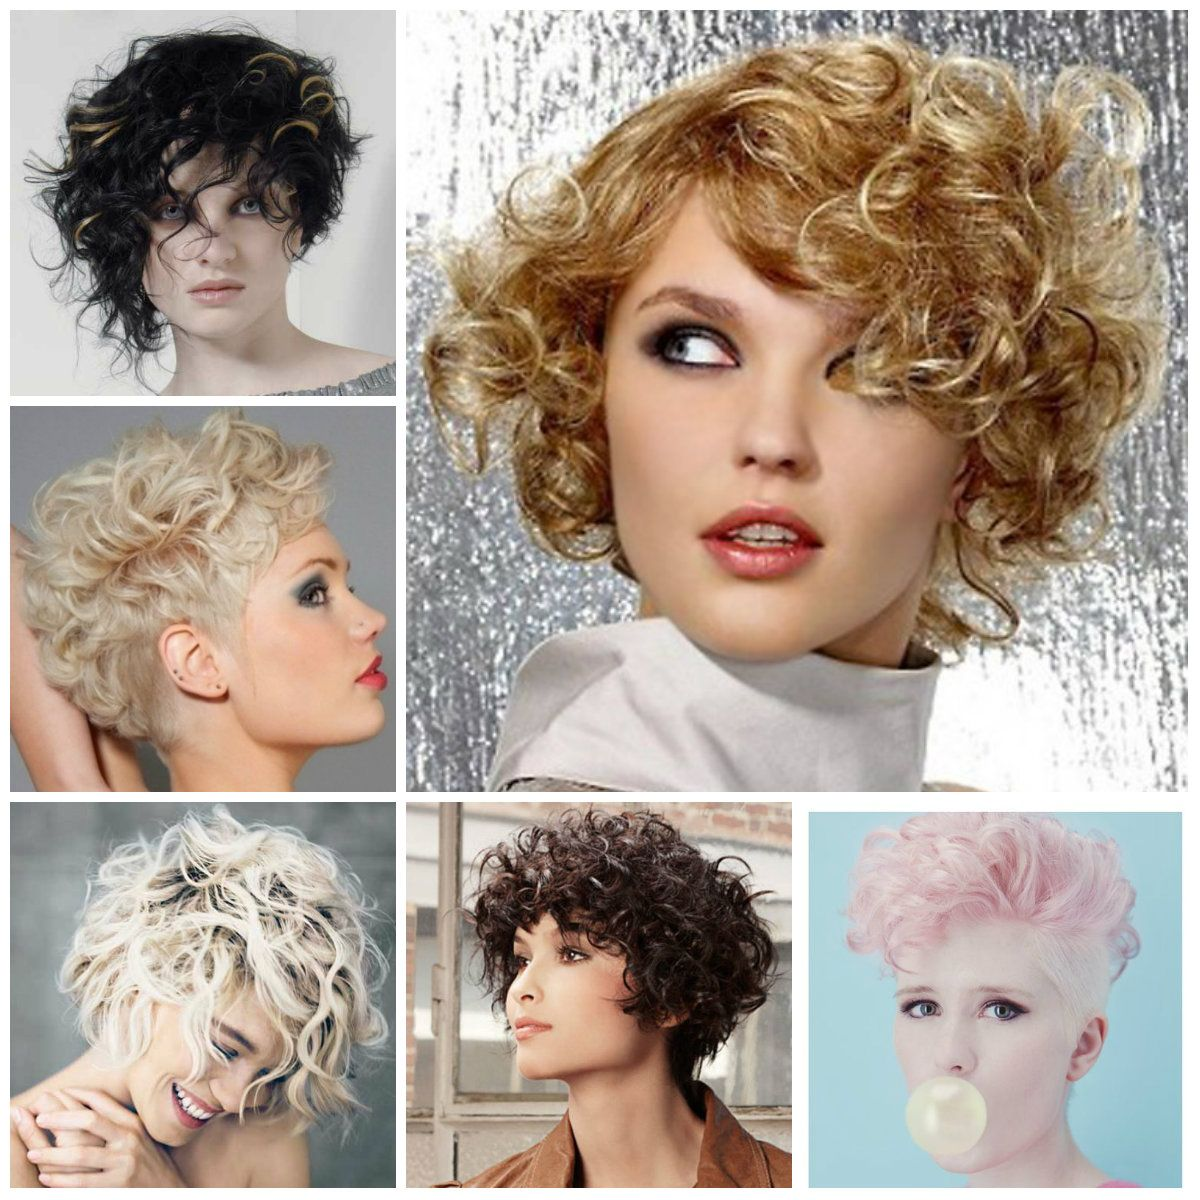 Trendy Short Haircuts for Curly Hair 2016 | Haircuts, Hairstyles 2016 and  Hair colors for short long m… | Long face haircuts, Long face hairstyles, Short  curly hair